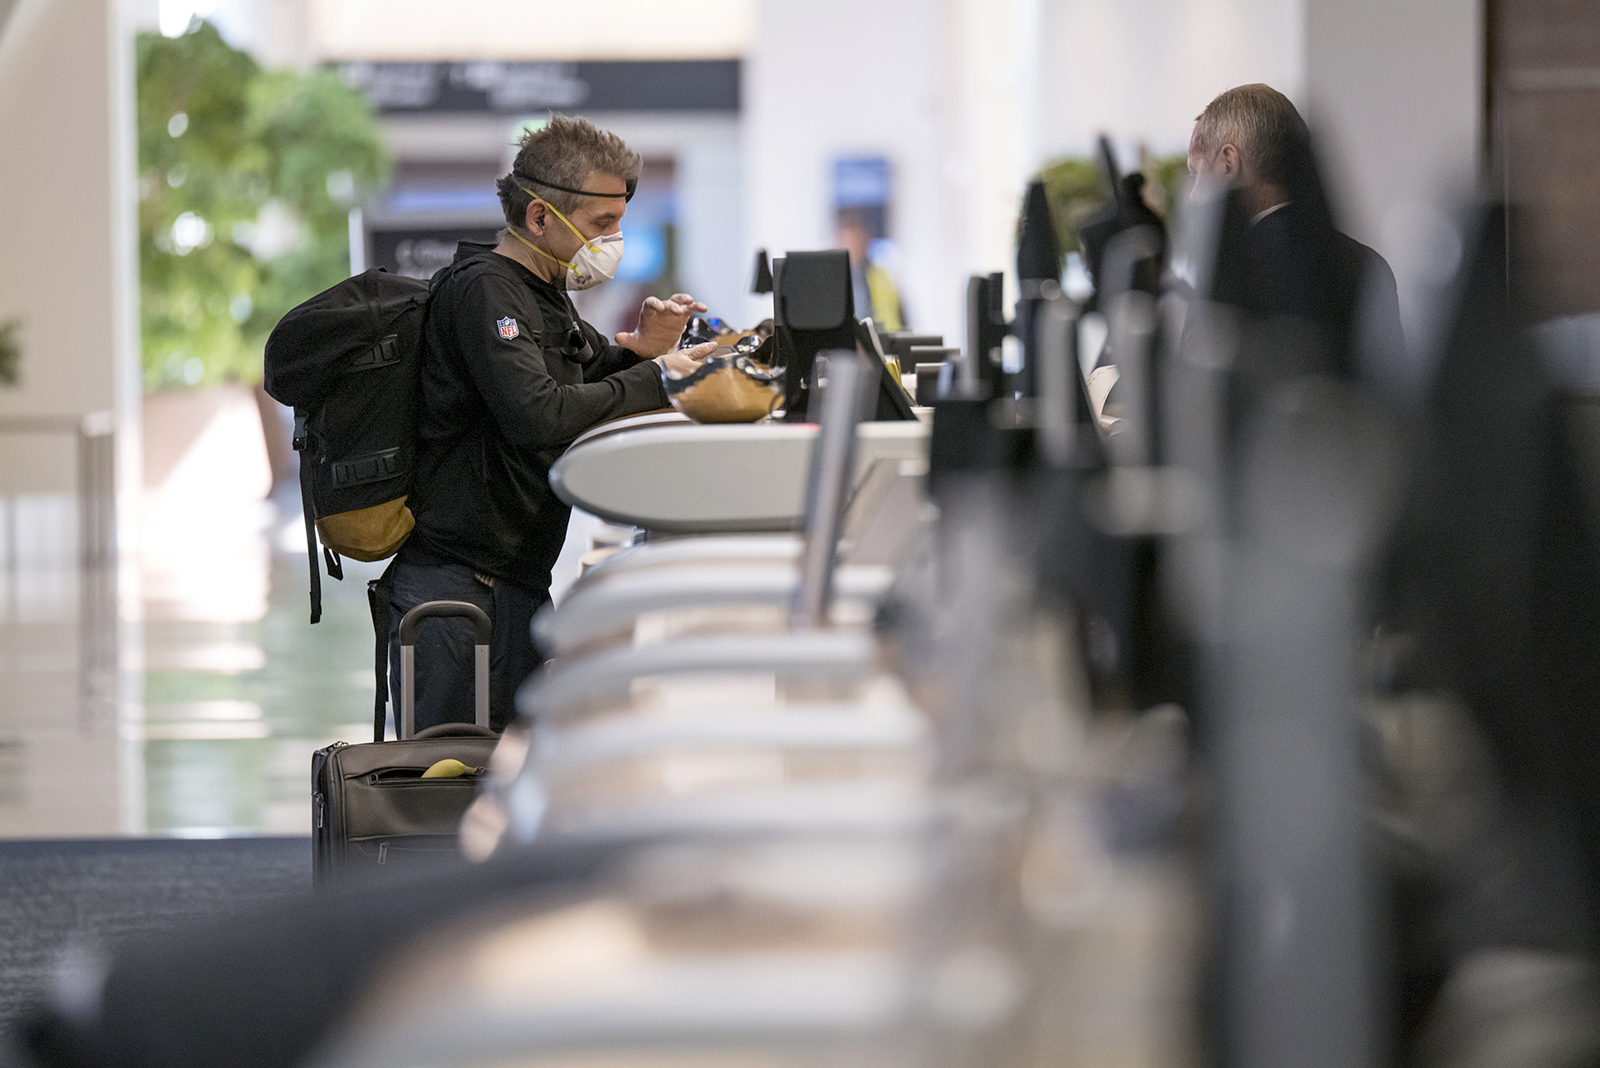 A traveler wearing a protective mask and gloves checks in at the Delta Air Lines Inc., counter at San Francisco International Airport in California on April 2.